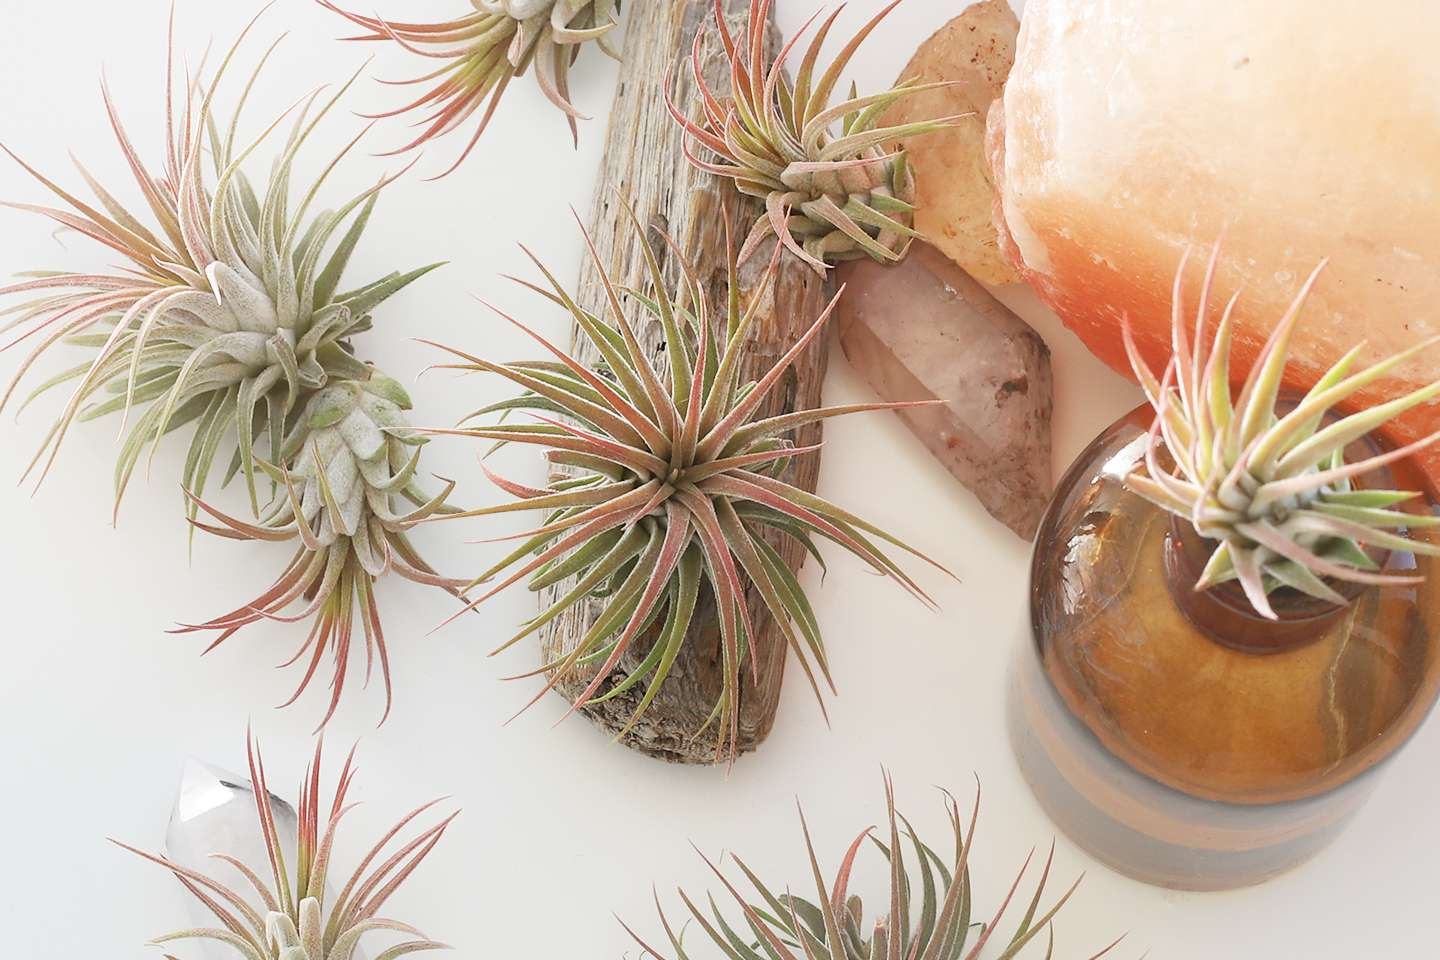 air plants mounted on various surfaces